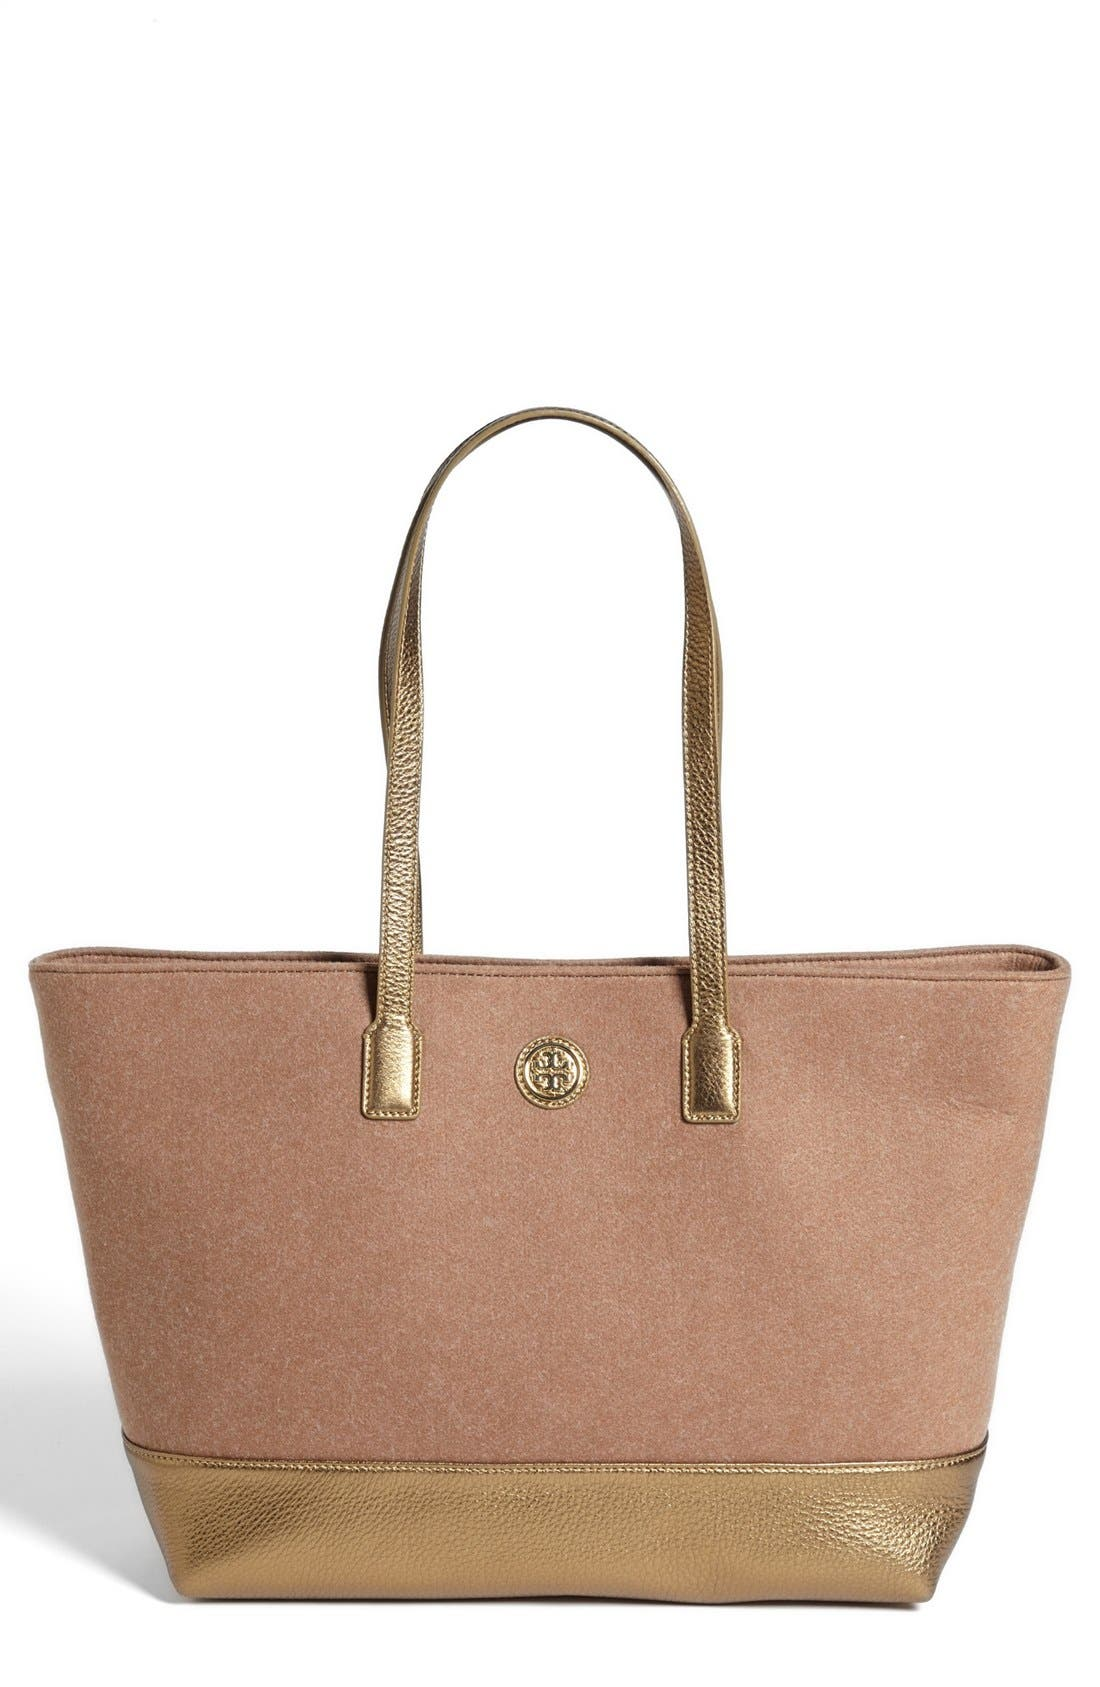 Main Image - Tory Burch 'Emmy - Small' Tote